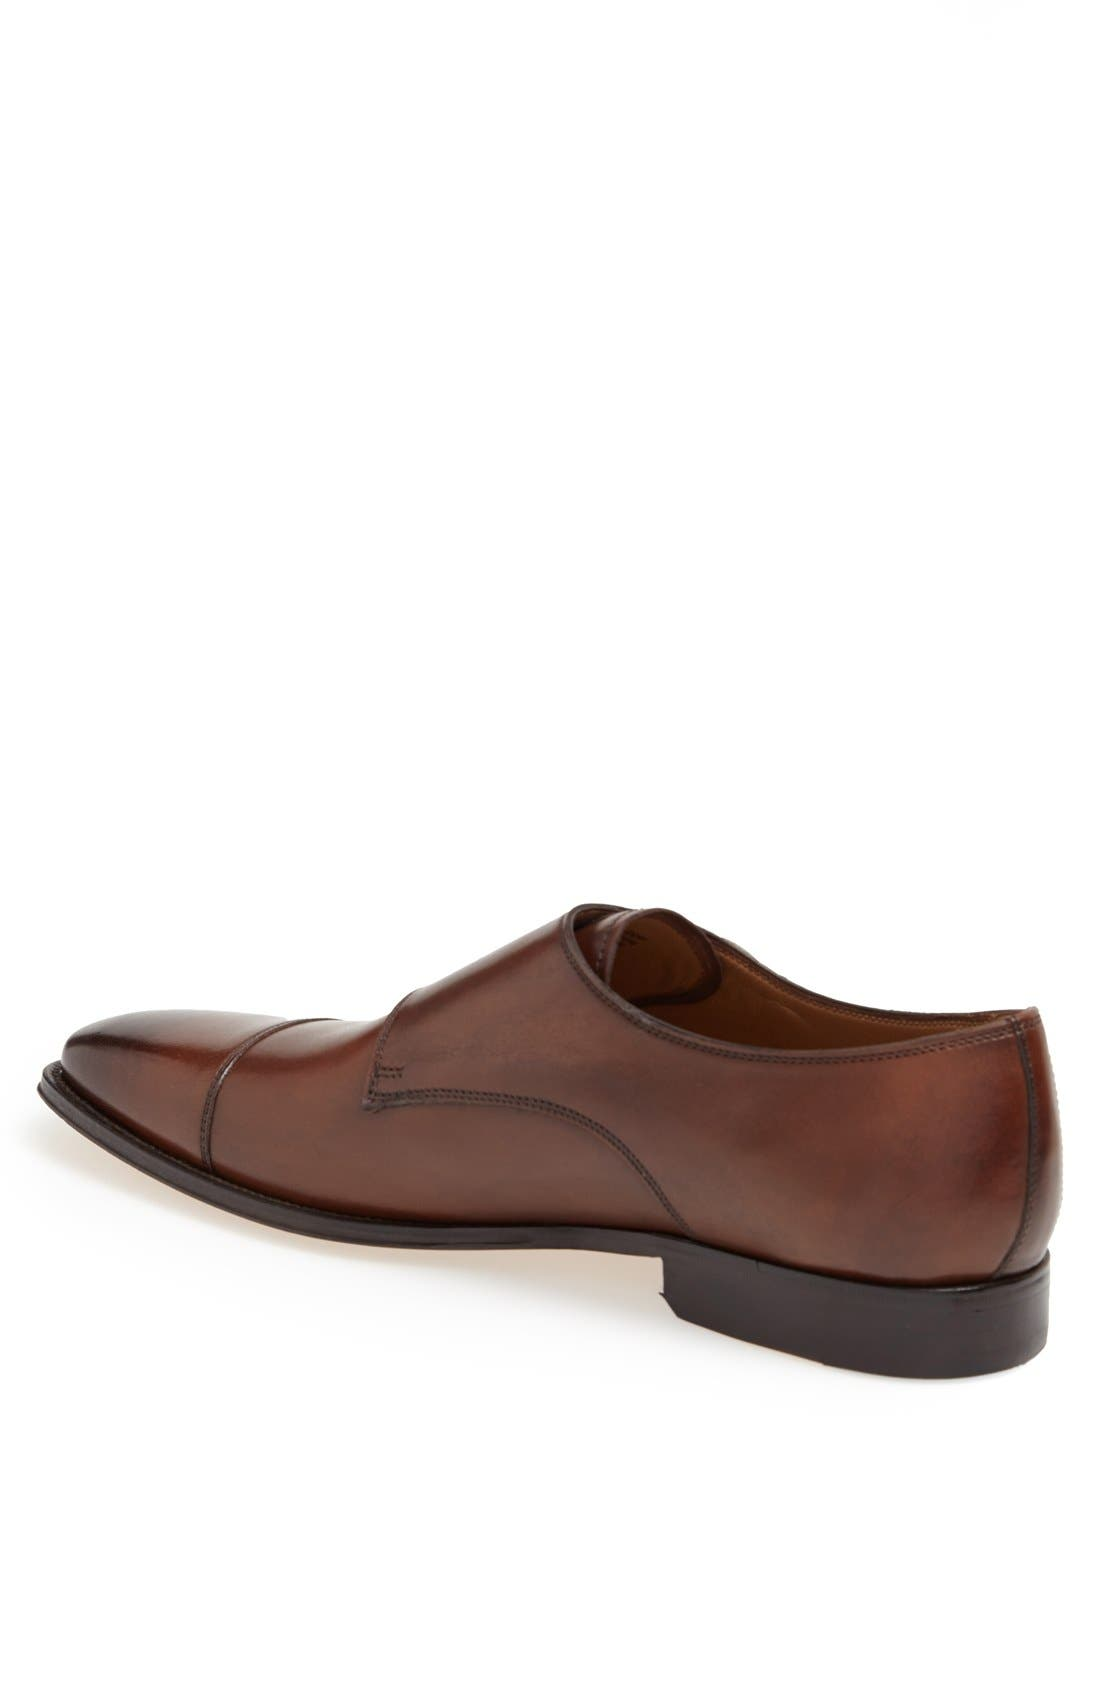 Alternate Image 2  - Florsheim 'Classico' Double Monk Strap Slip-On